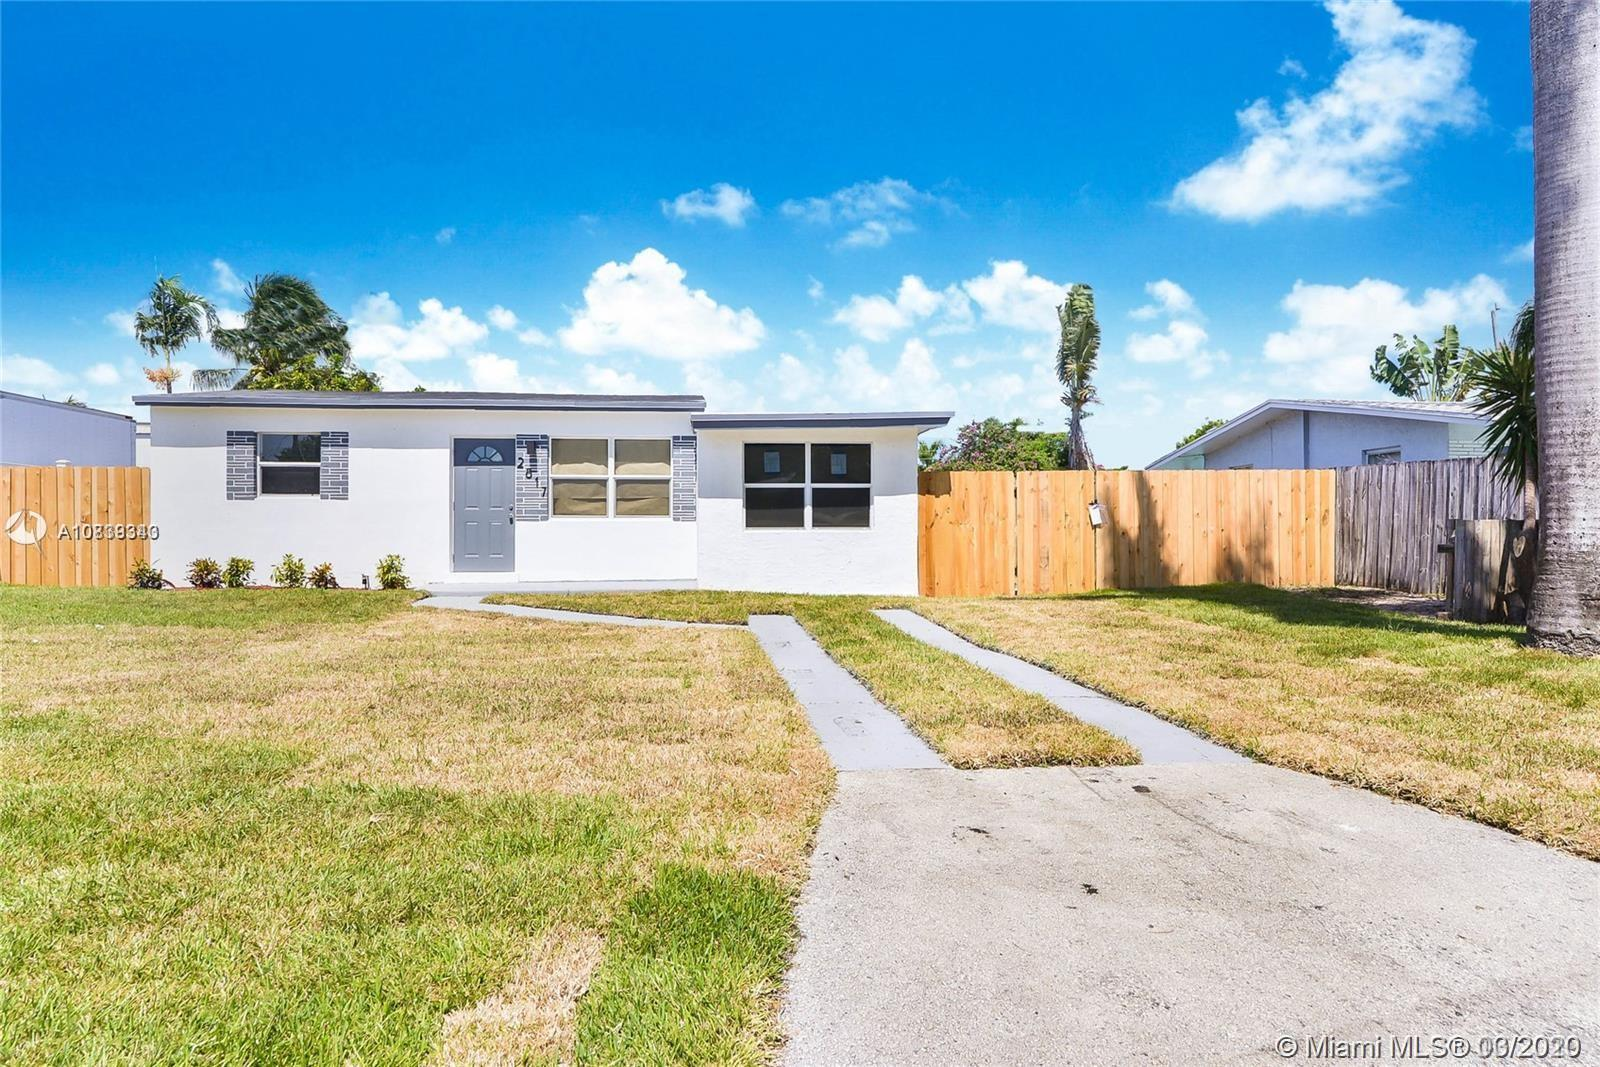 Completely Remodeled 3 bed 2 bath.. This property features a master suite with his and hers closets